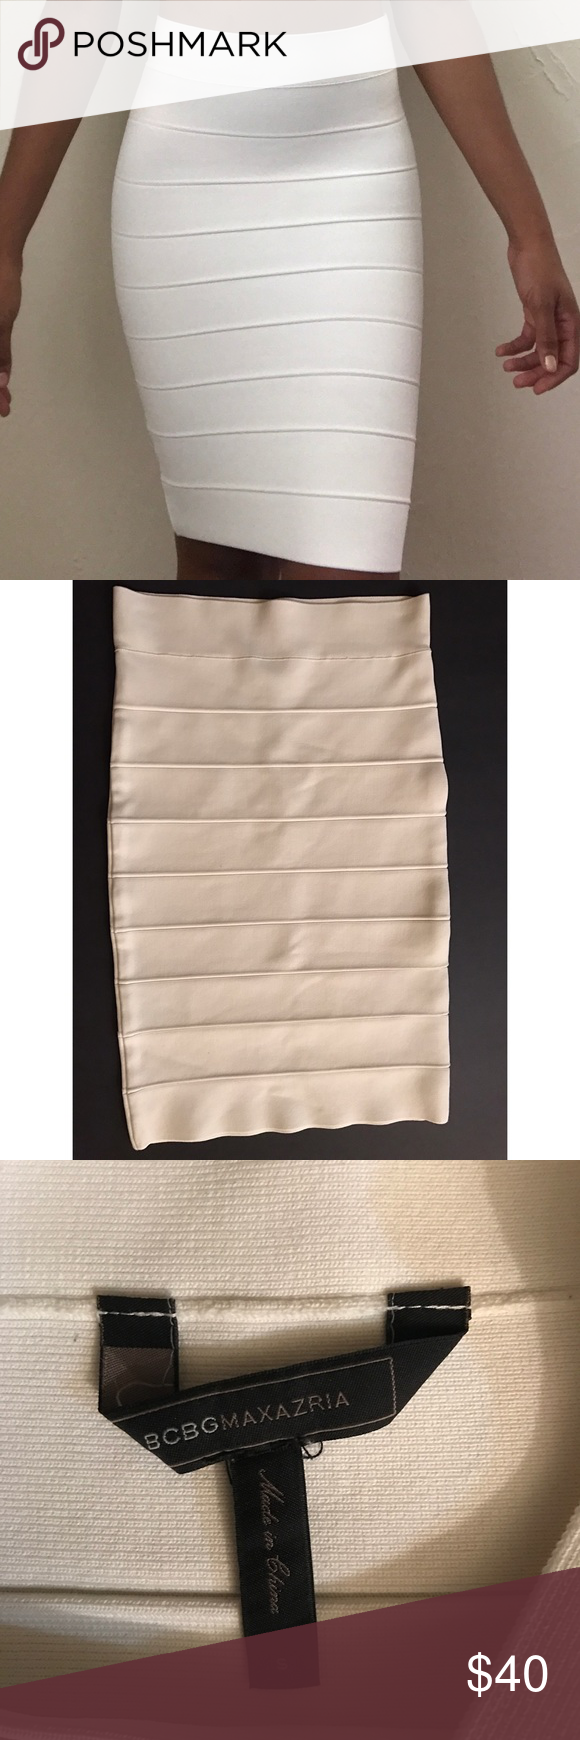 BCBGMAXAZRIA Bandage Skirt If you don't have one, make this one yours! Add some color on top! BCBGMaxAzria Skirts Midi